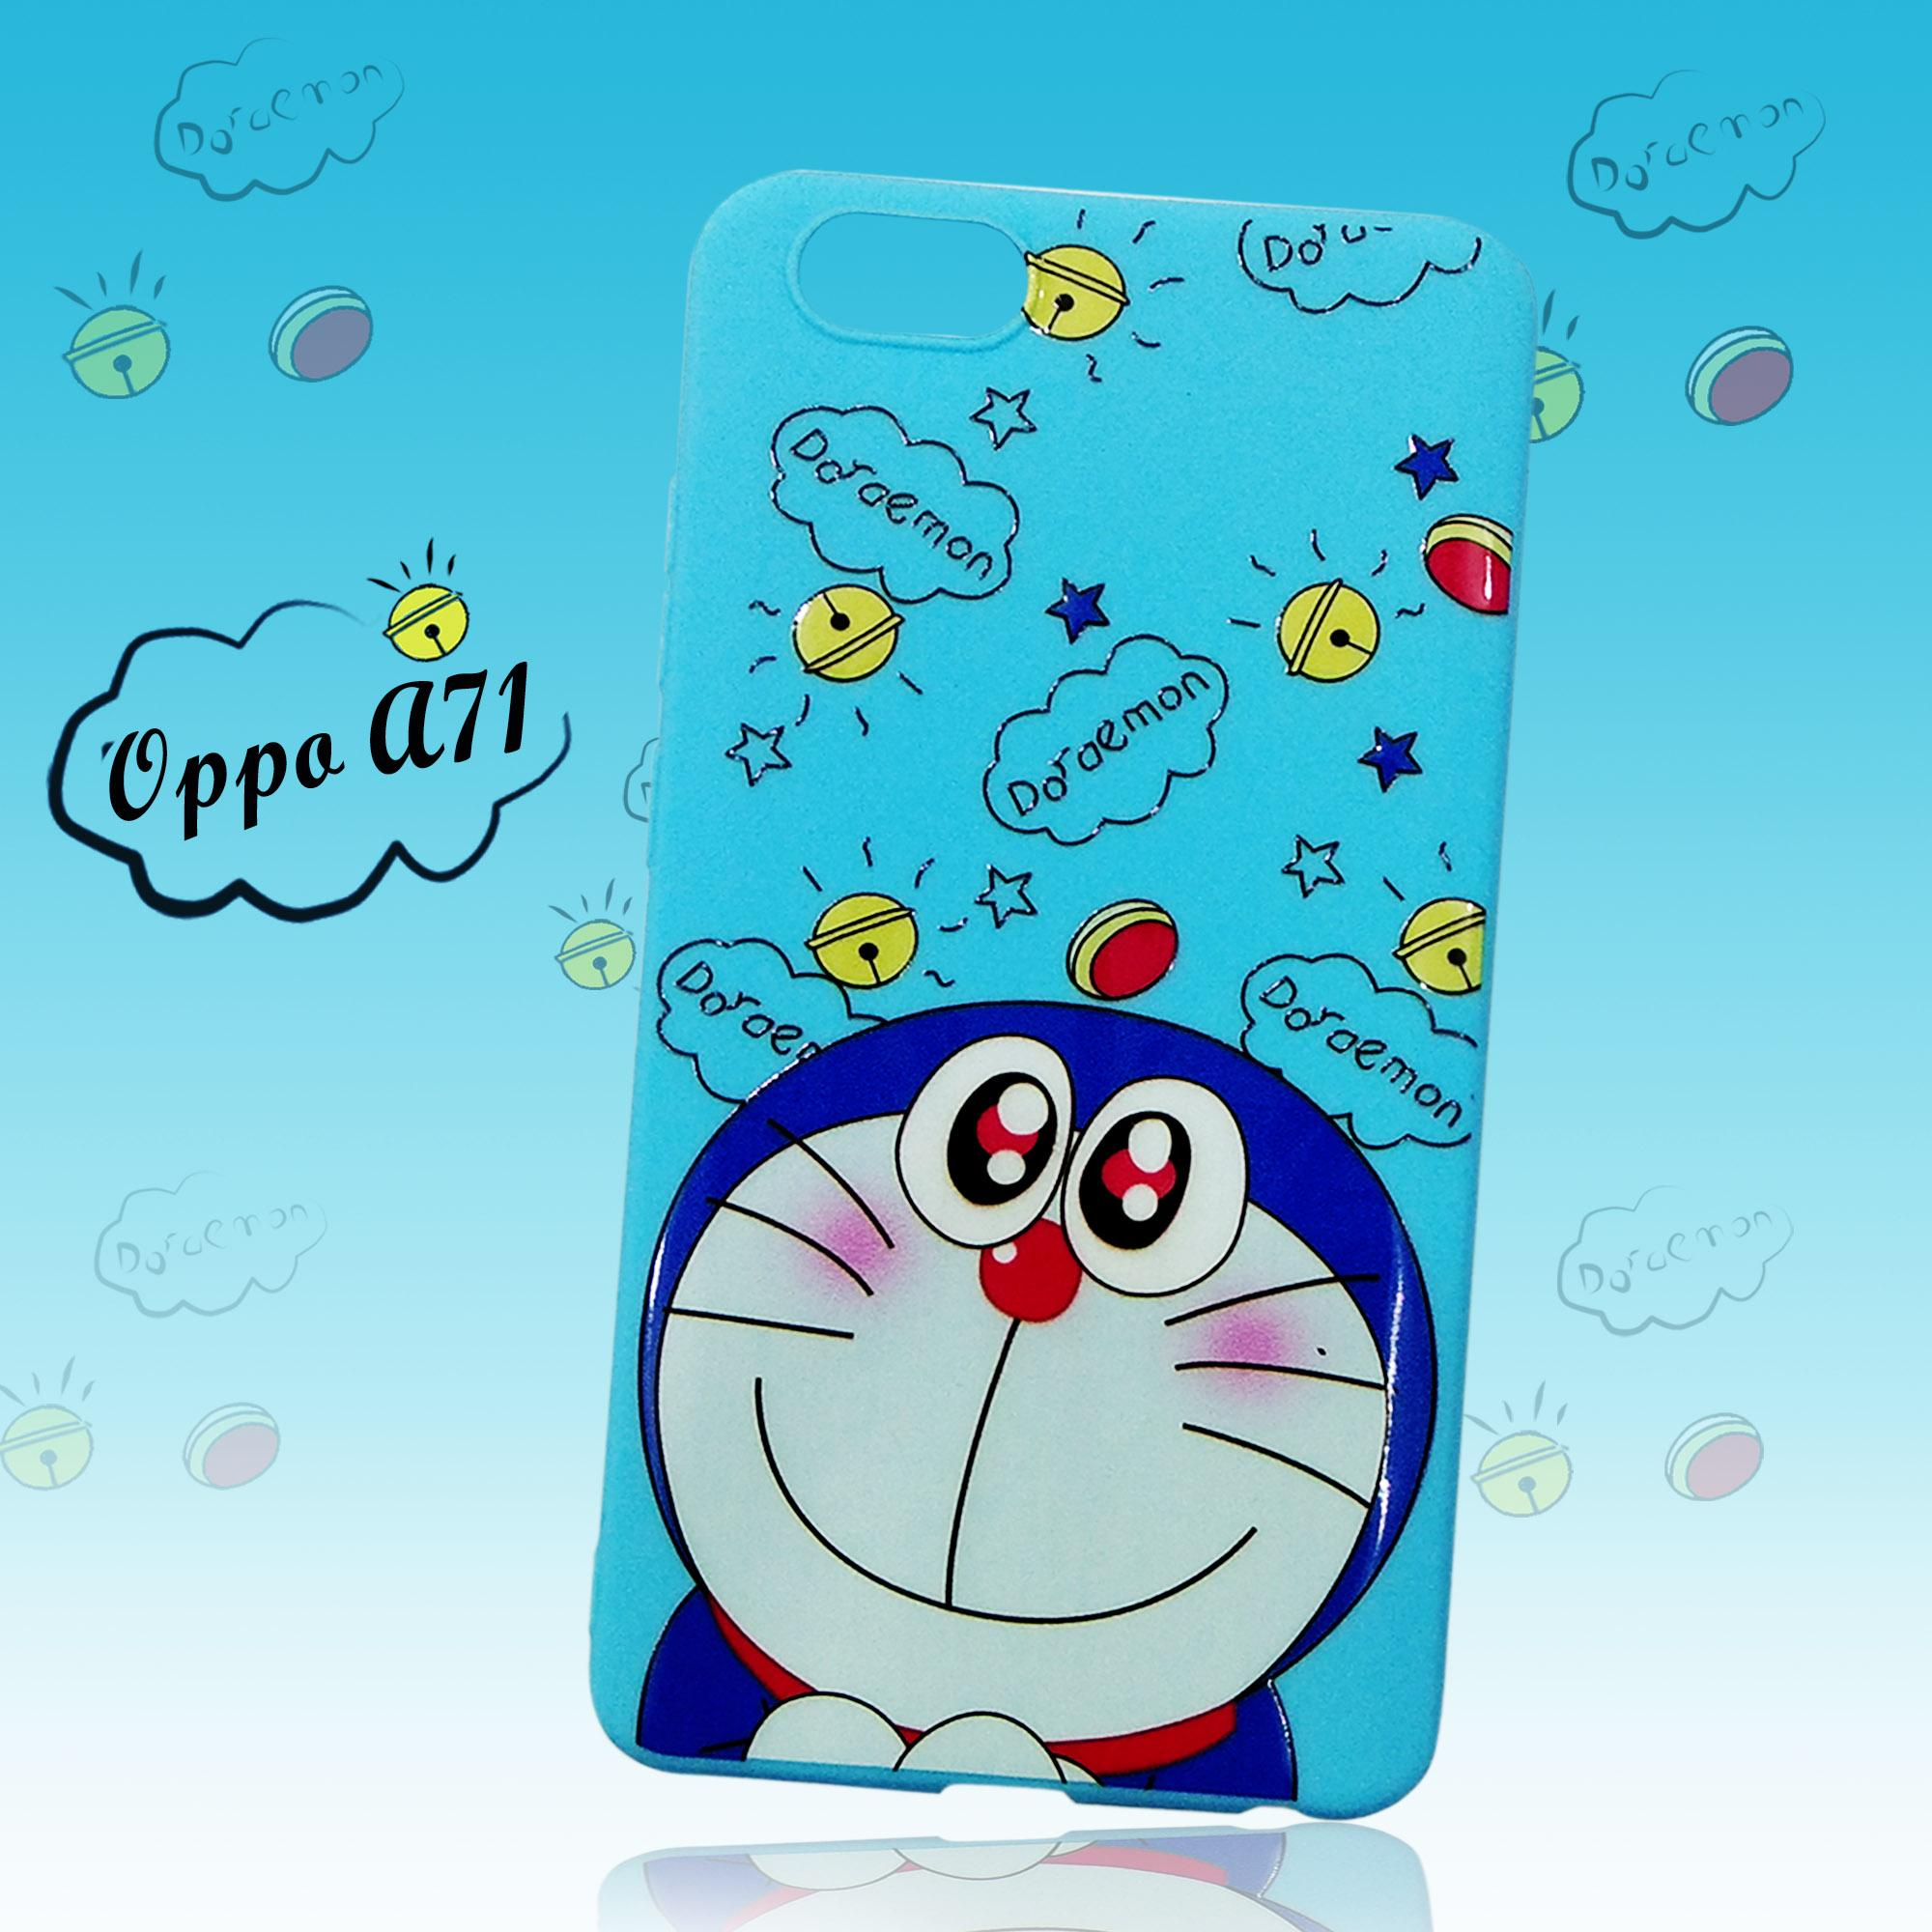 Rp38.000Intristore Fashion Case Sillicon For Oppo A71 Doraemon